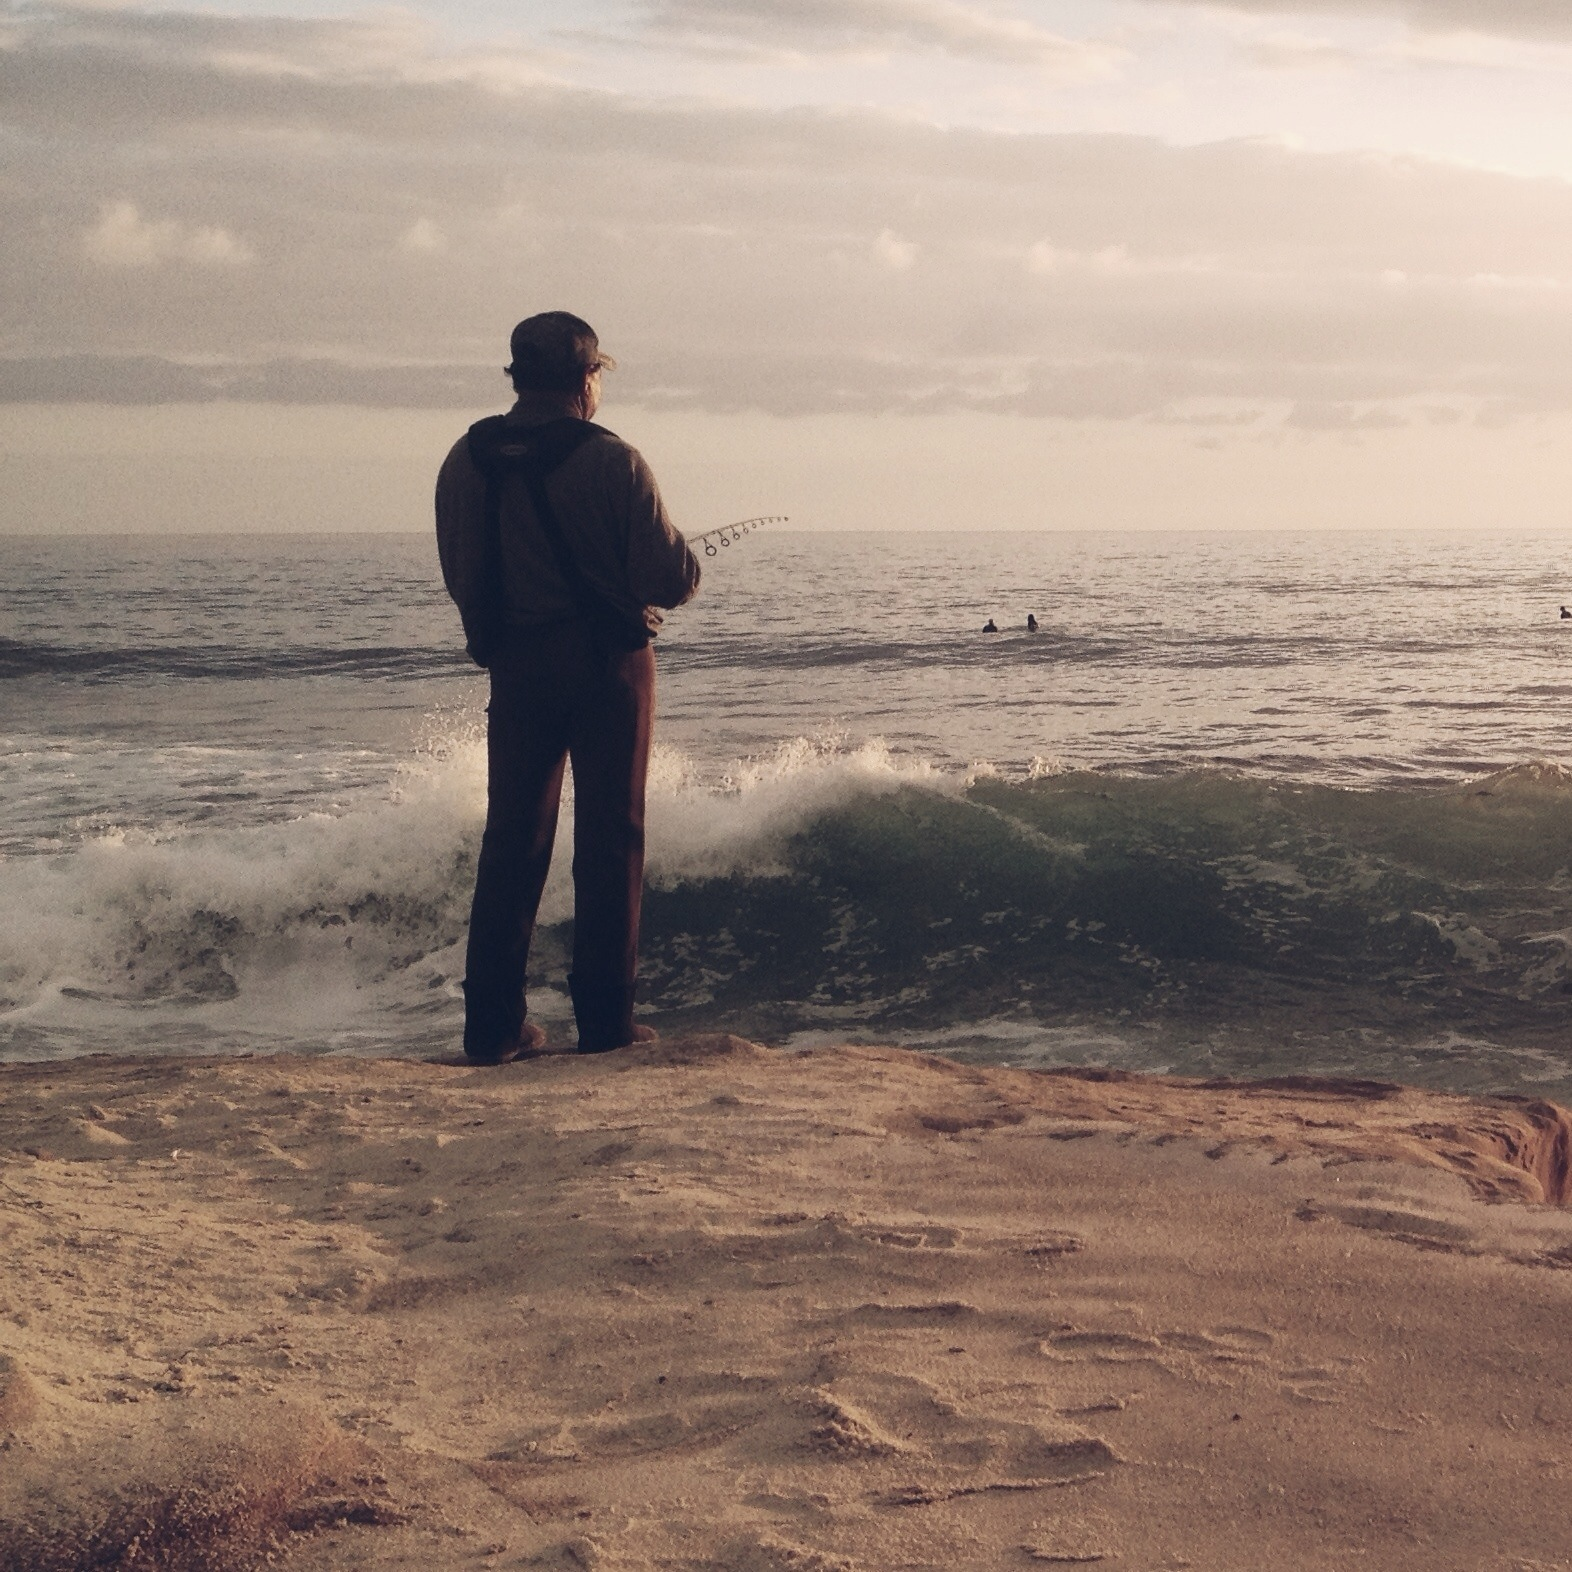 Man stood on the shoreline, facing the sea